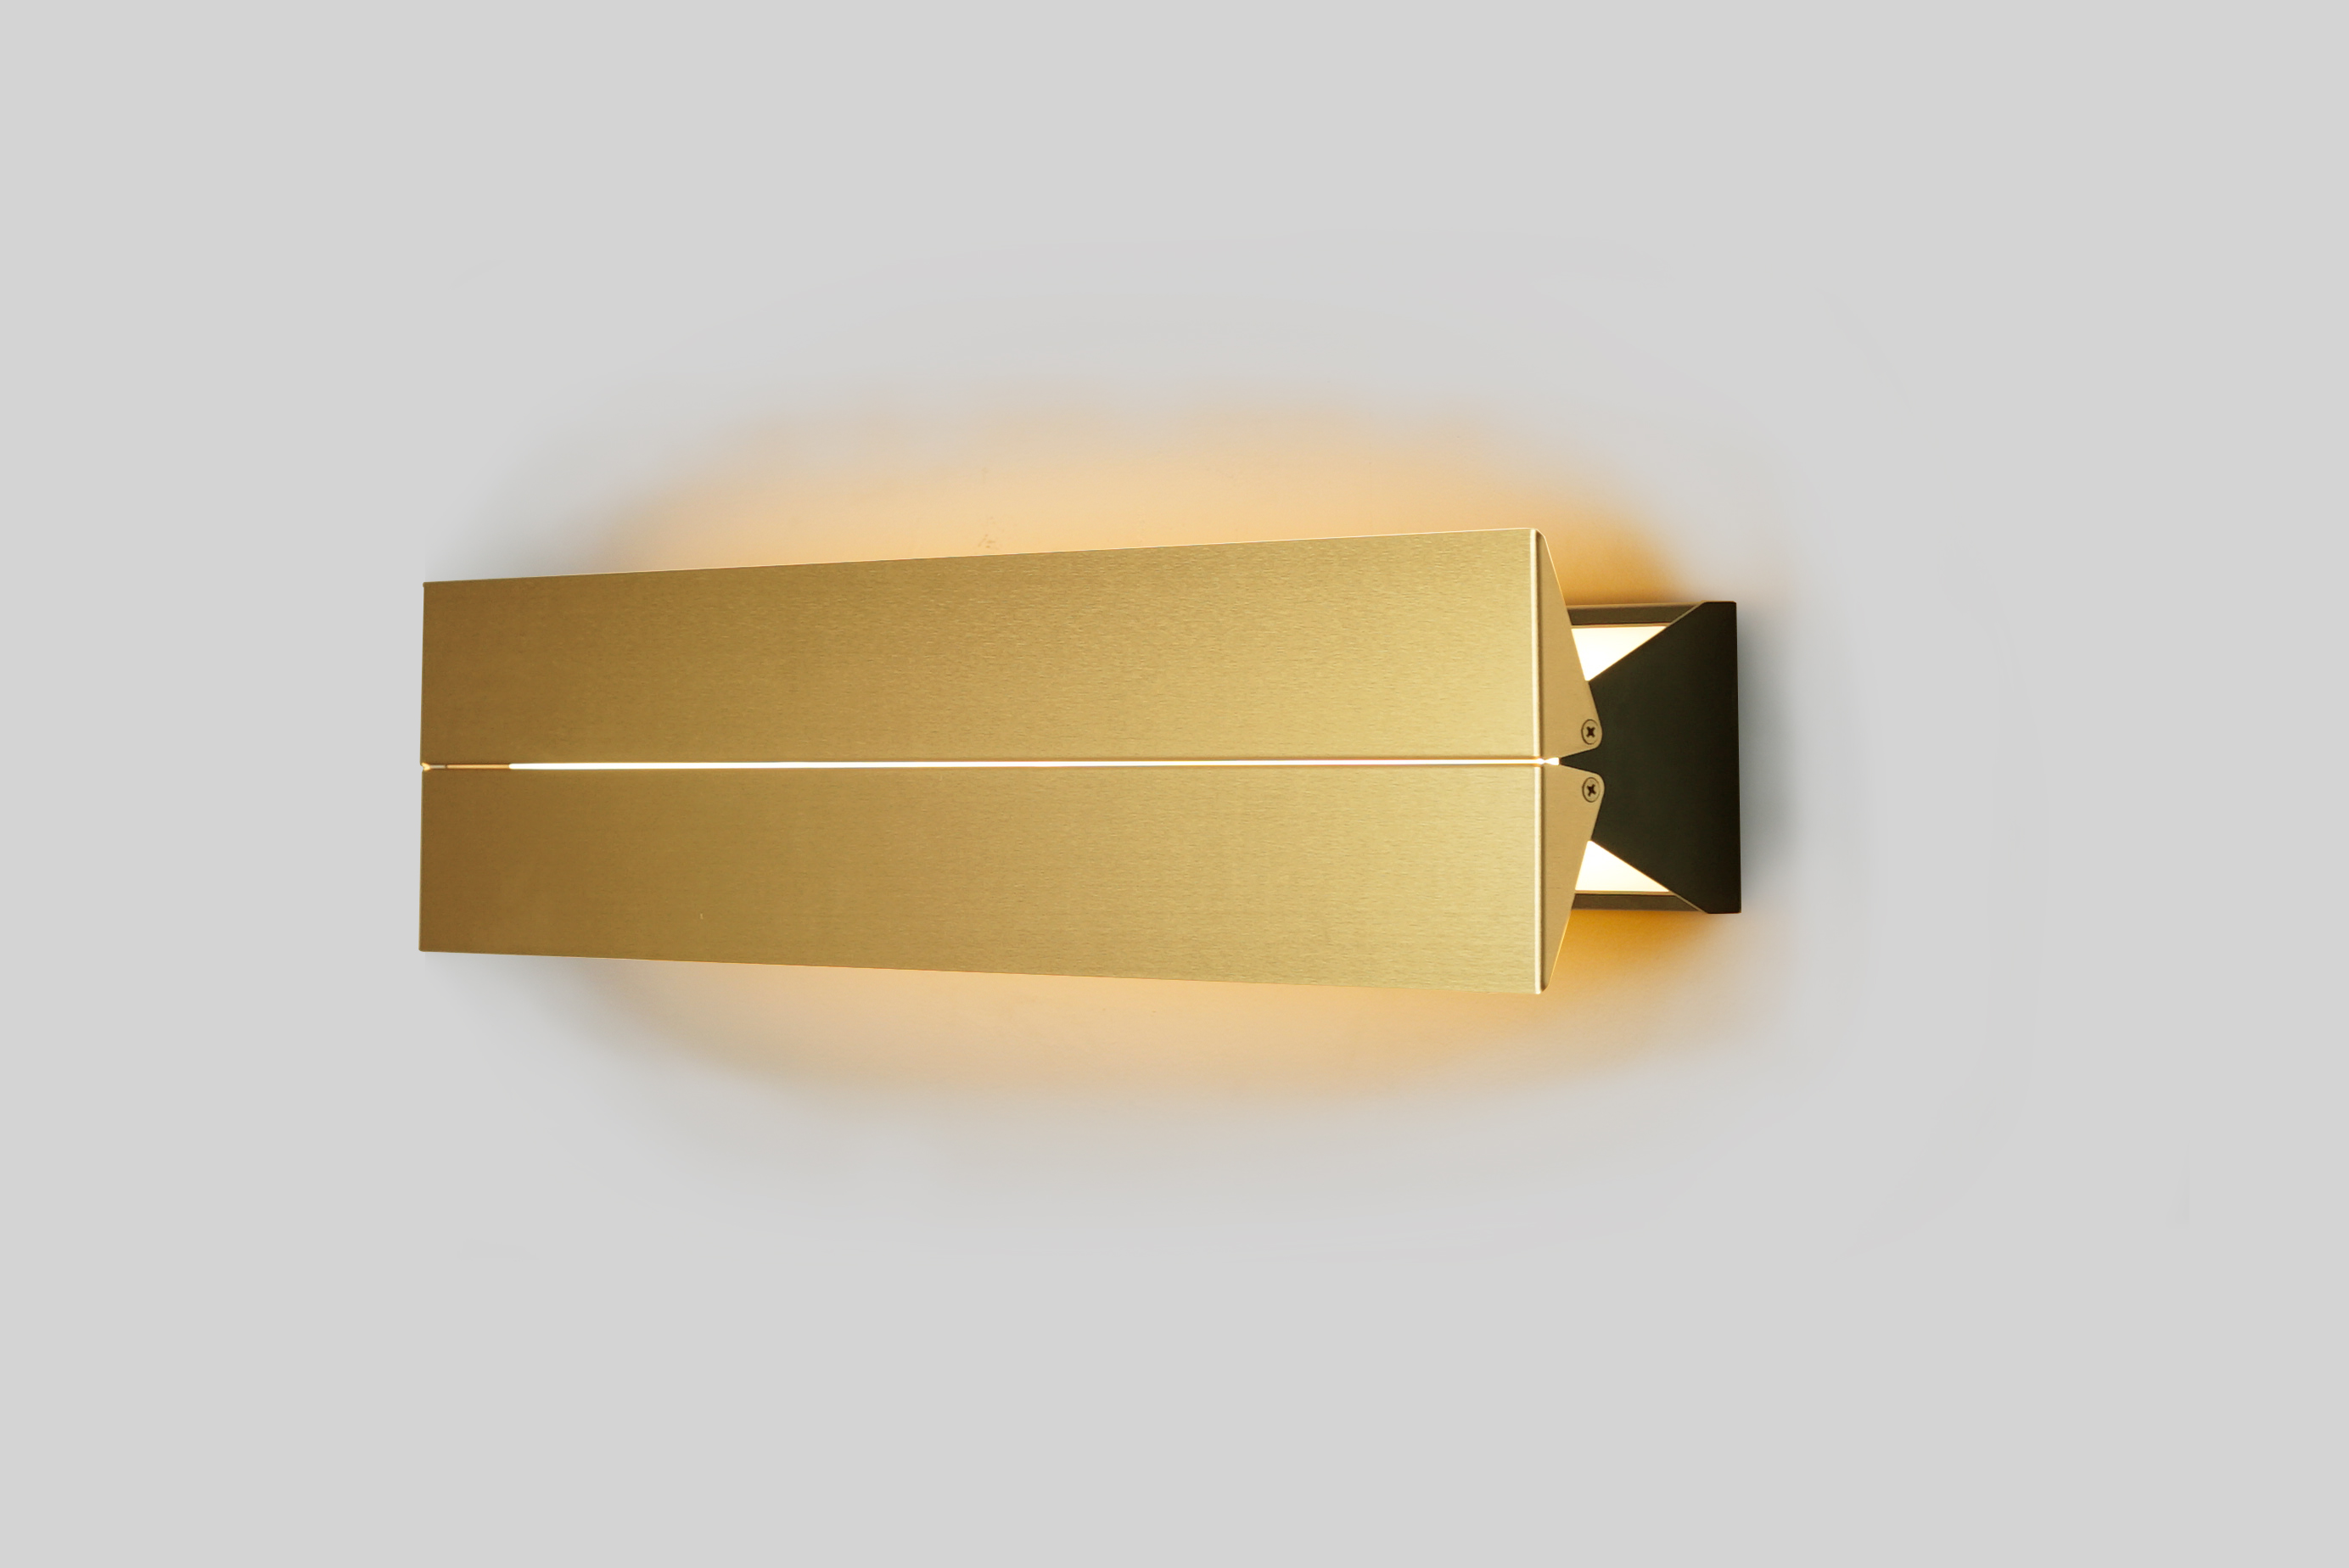 bronze rh sconce glass angle hill roll lighting brz cut agnes products lights